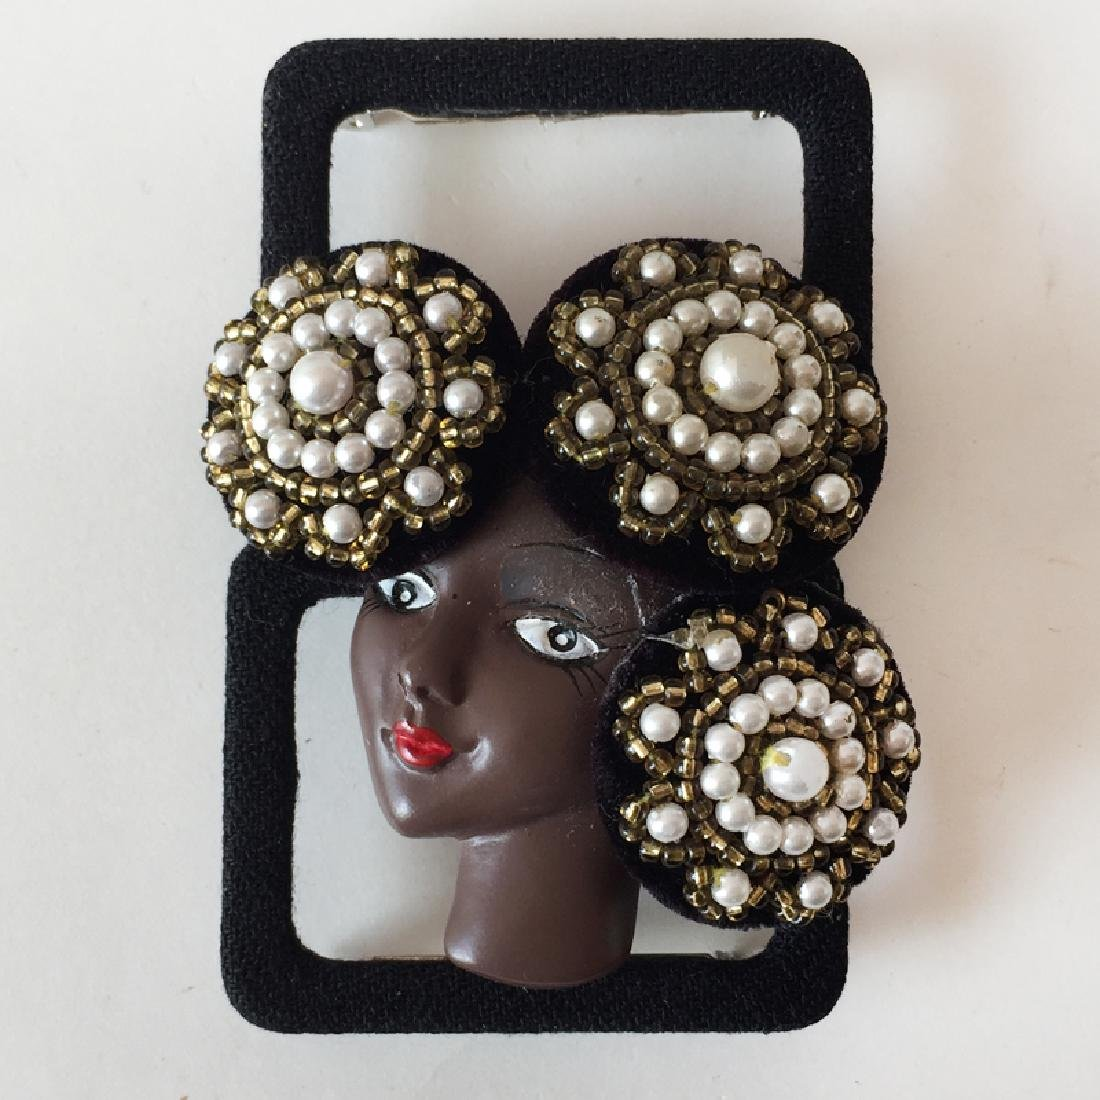 African -American woman face brooch in hat embellished - 2